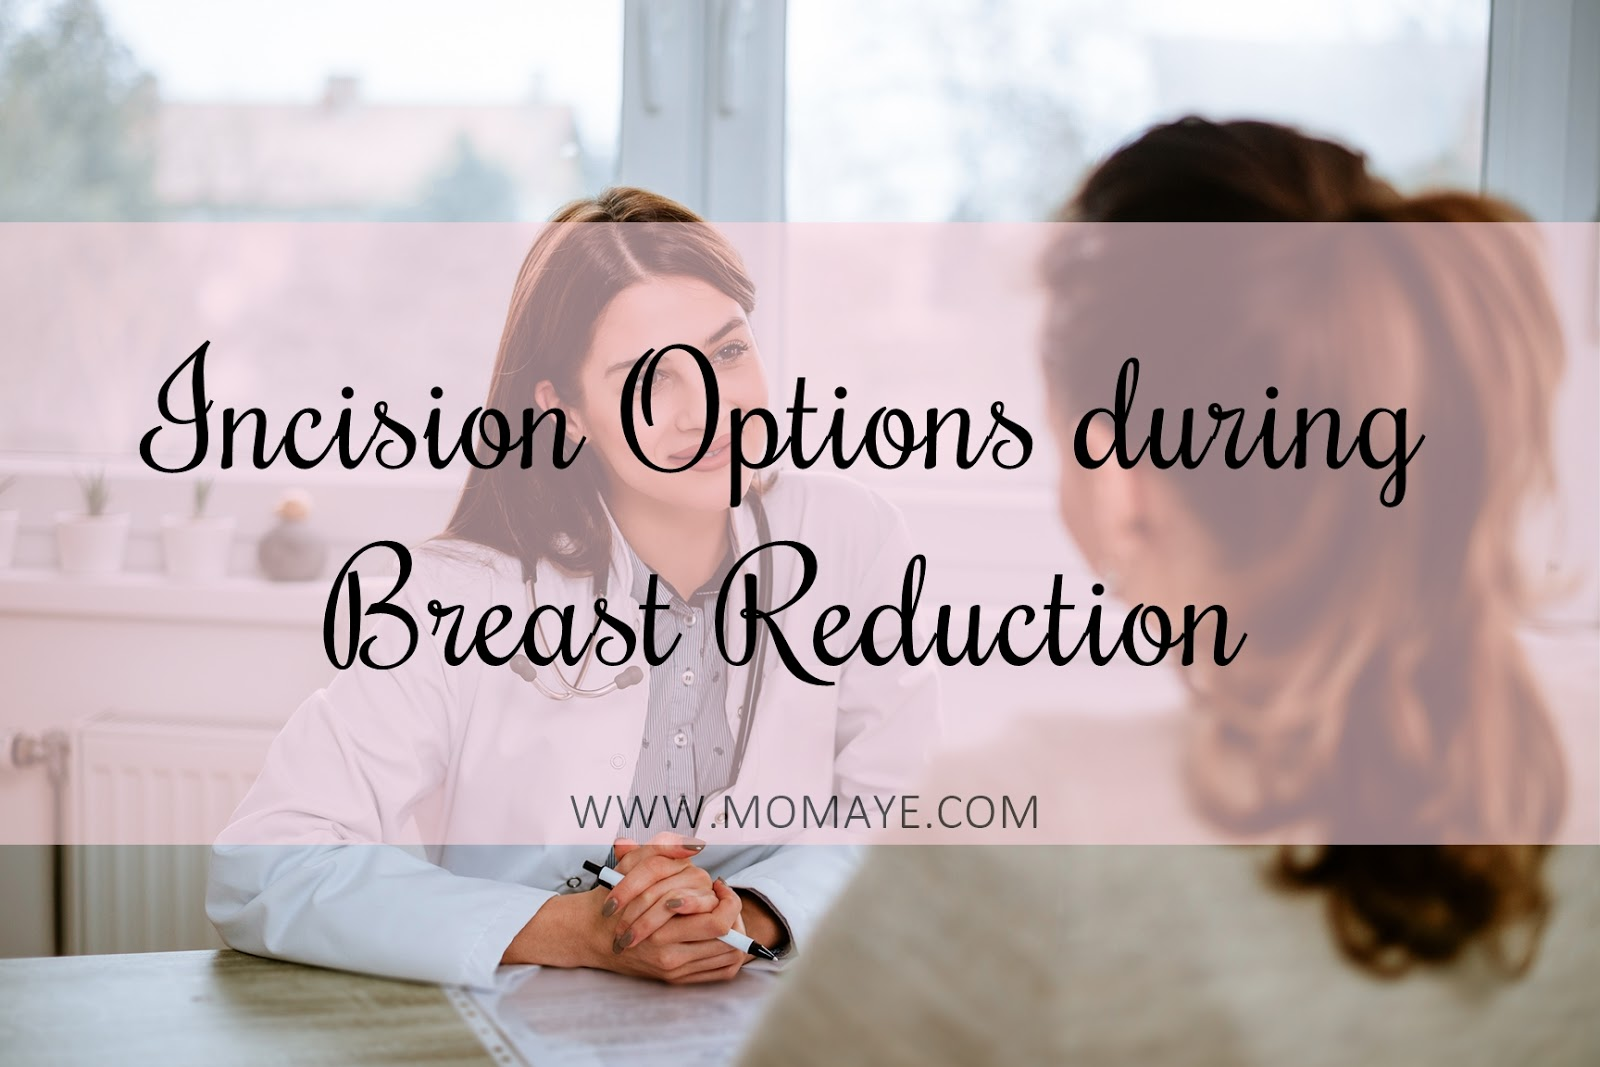 Incision Options During Breast Reduction